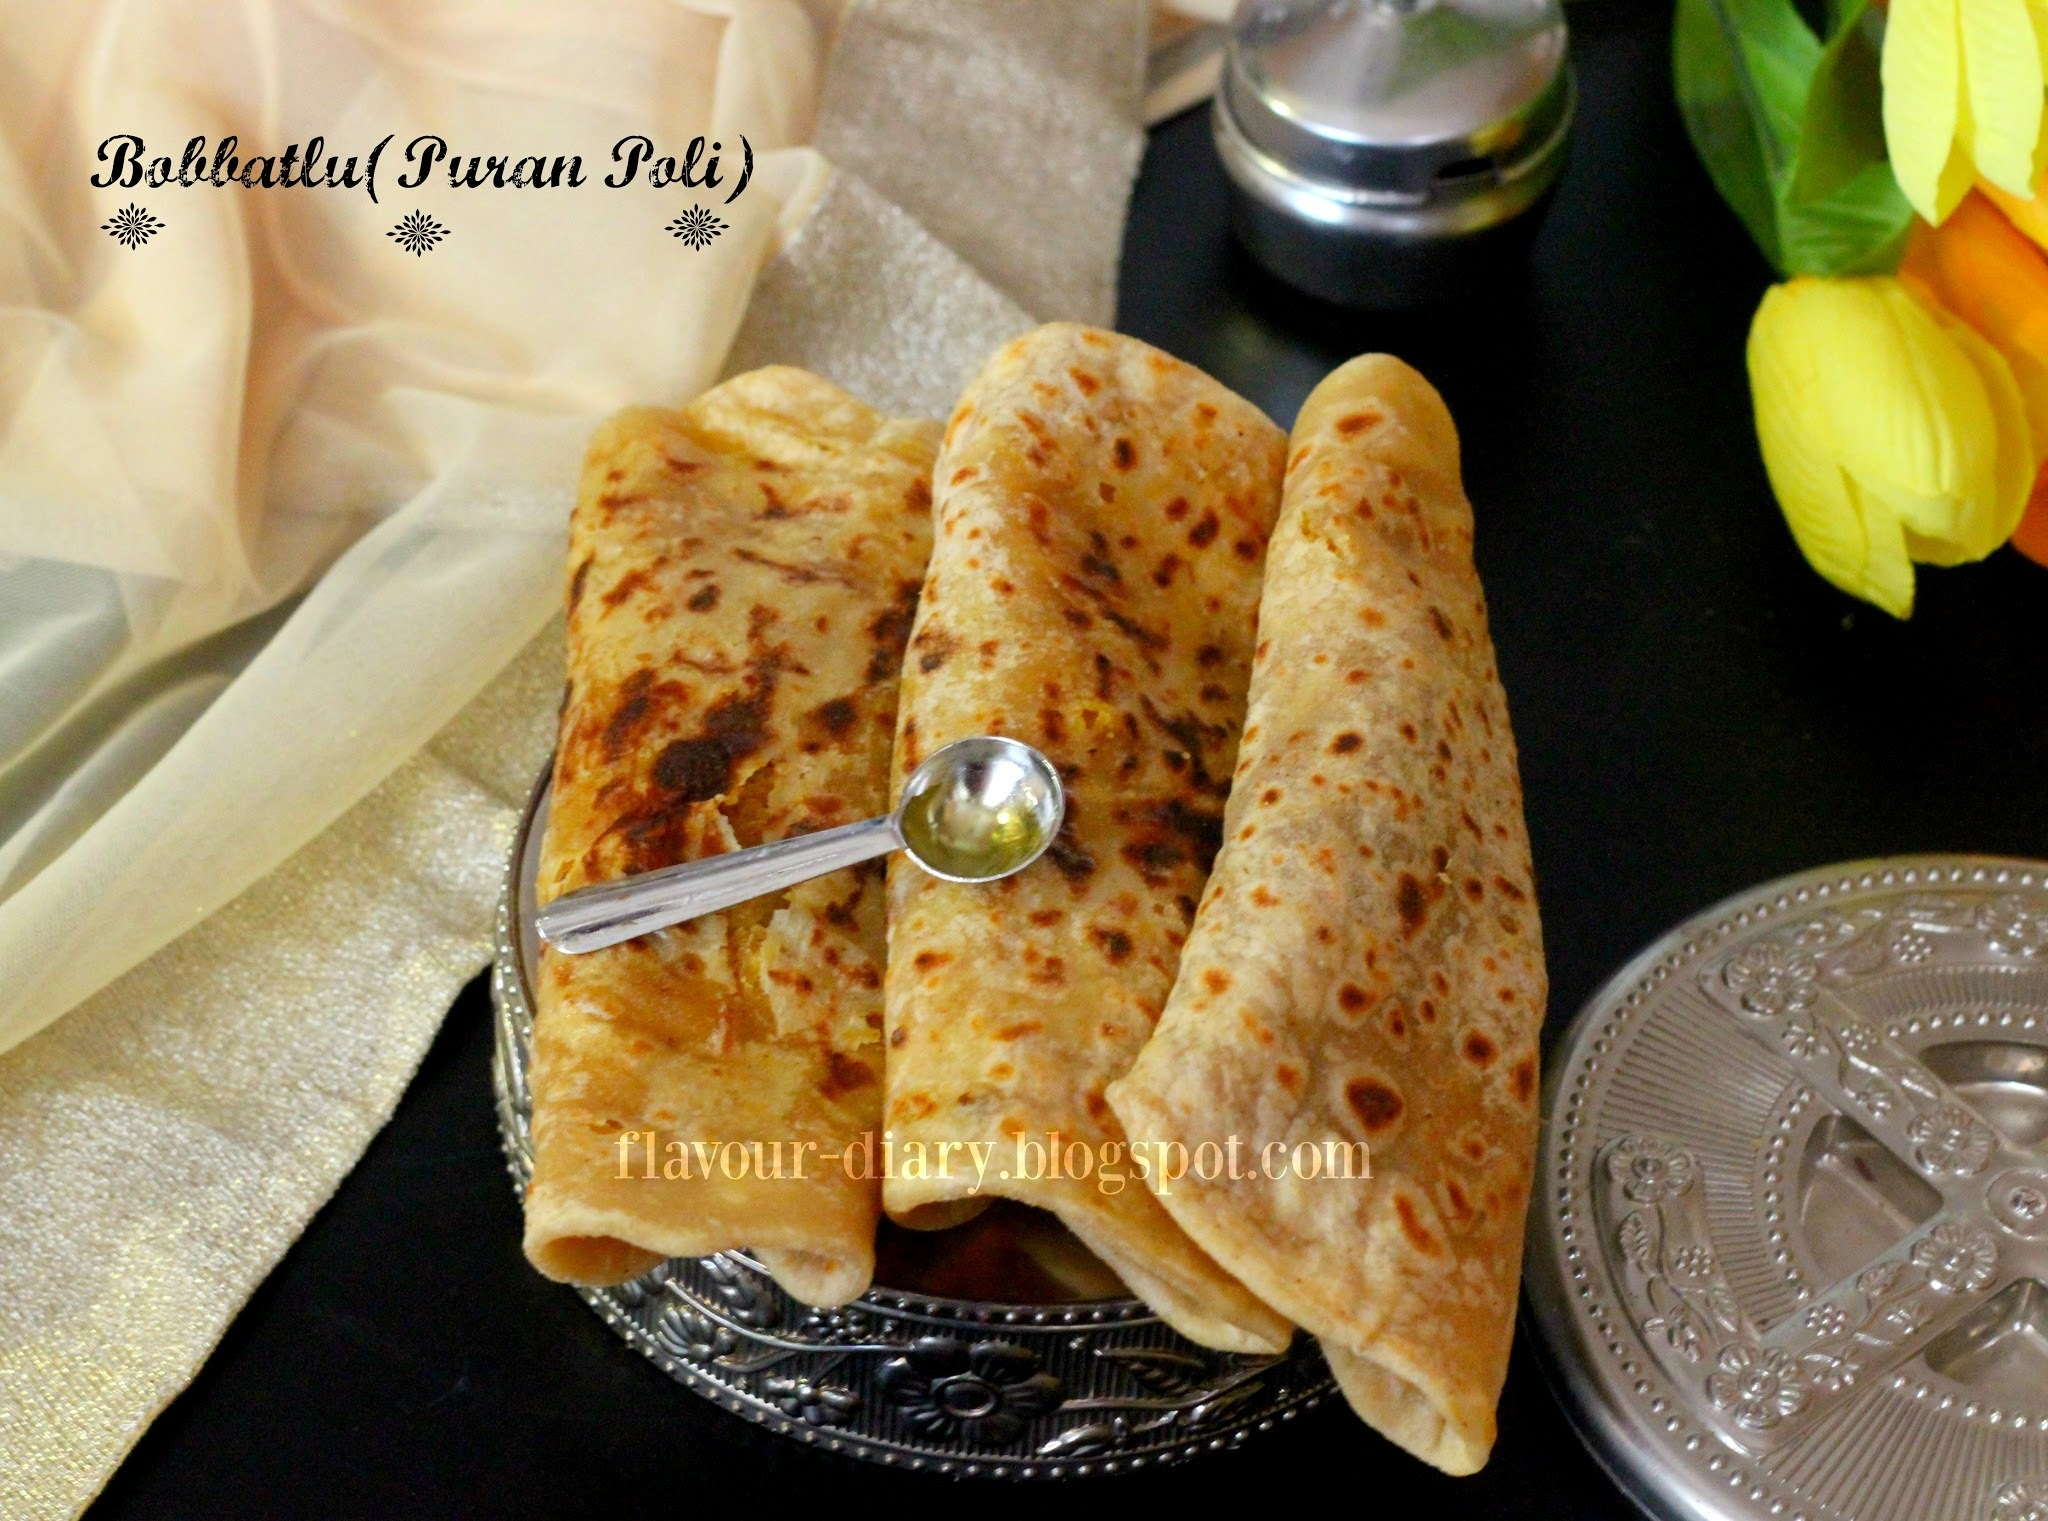 Bobbatlu | Puran poli Recipe | how to make Puran Poli | Flavour Diary